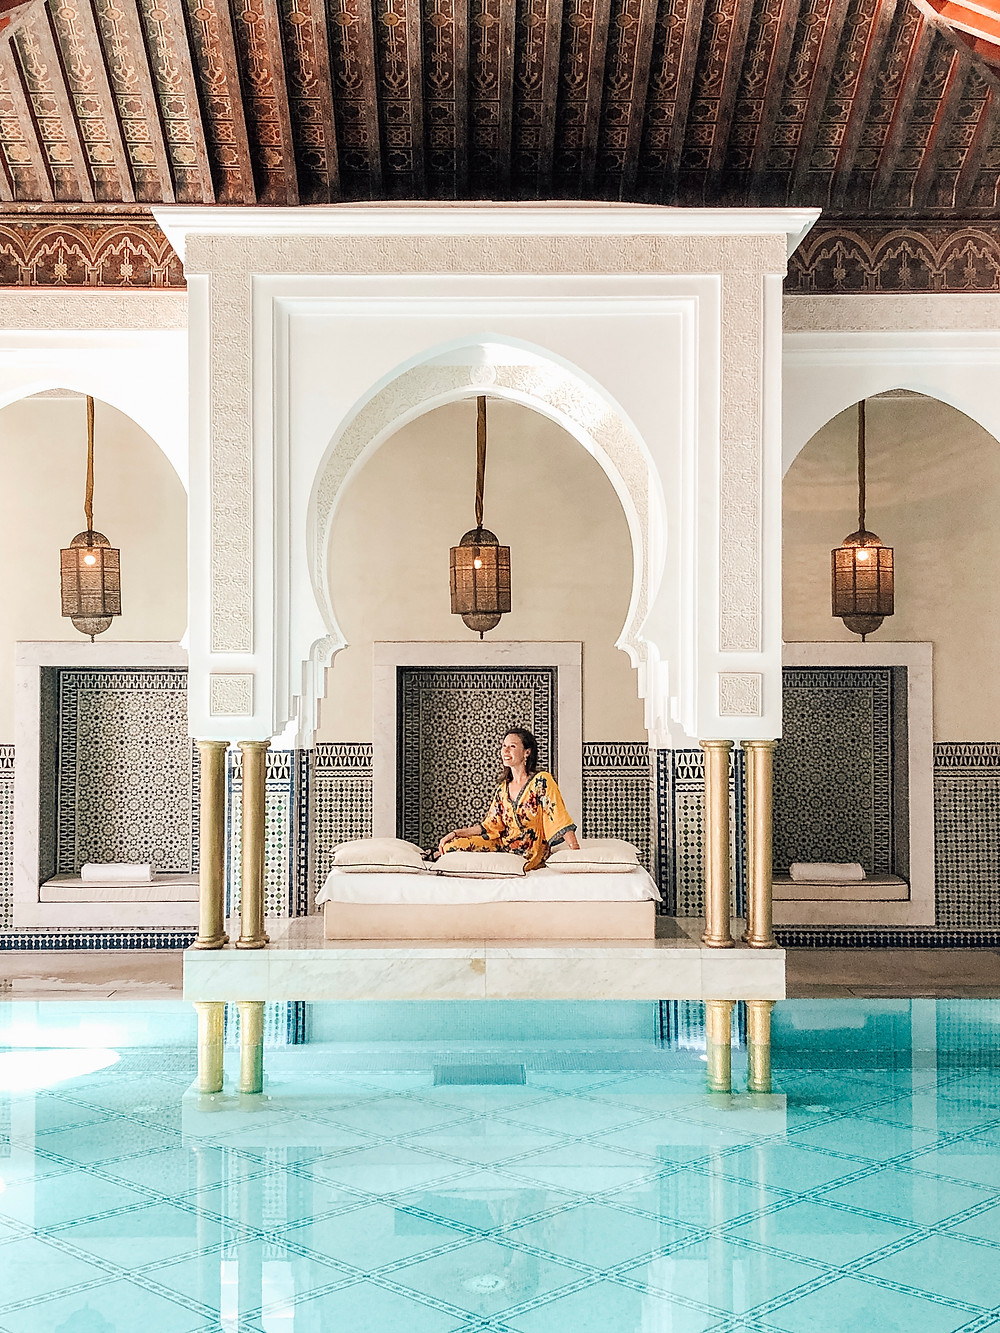 The Spa at La Mamouina in Marrakech, Morocco